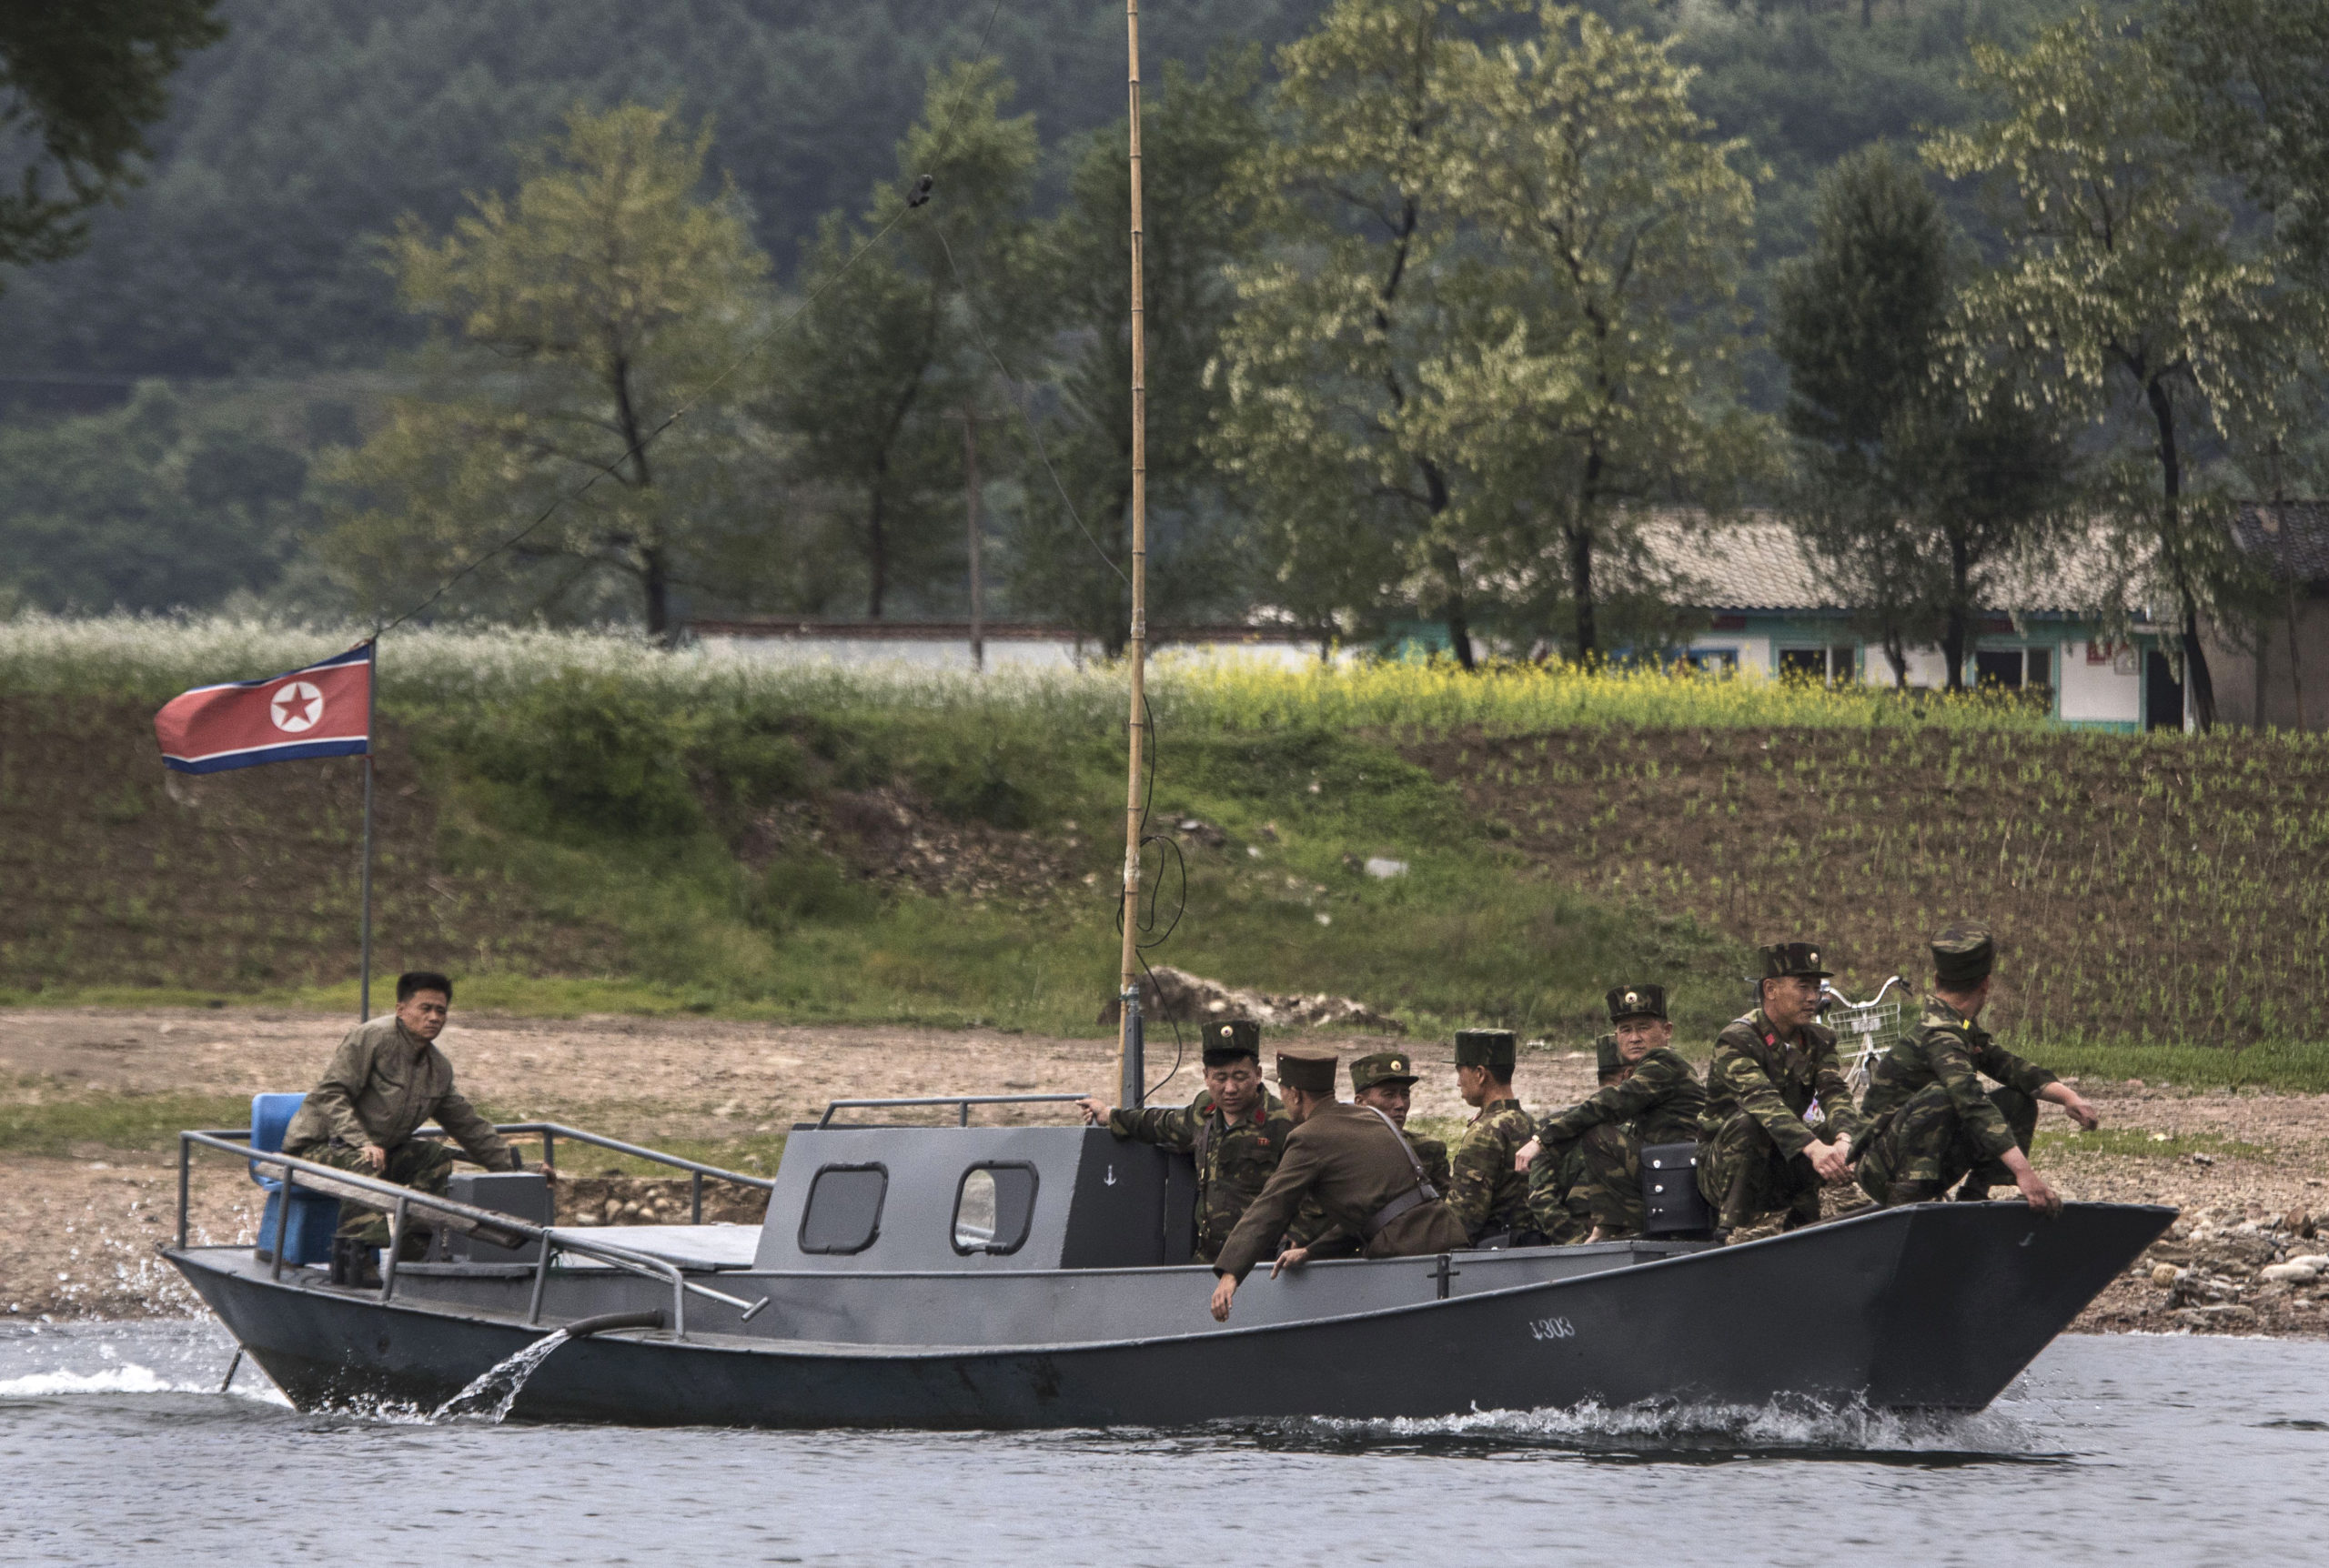 DANDONG, CHINA - MAY 23: (CHINA OUT) North Korean soldiers ride on a boat used as a local ferry as they cross the Yalu river north of the border city of Dandong, Liaoning province, northern China near Sinuiju, North Korea on May 23, 2017 in Dandong, China. China has long been North Korea's main ally and trading partner, but relations are increasingly strained by continued missile testing and provocations by the regime of Kim Jong Un. The North is almost entirely dependent on trade with China to feeds its impoverished economy, yet it has ignored calls by the international community to halt its nuclear and ballistic missile weapons programs. At least three-quarters of trade between the two nations flows through points along its 880-mile long shared border, a divide that reveals stark contrasts in development. Cities such as Dandong boast high-rise buildings and advanced infrastructure, and the Friendship Bridge serves as the conduit for the bulk of trade. From hired boats along the Yalu river, Chinese tourists peer into the reclusive North, marked by soldiers, meagre villages, and depleted farmland. The United States has pressured China to do more to leverage its clout with North Korea, though Beijing remains concerned that outright regime collapse in Pyongyang could trigger a rush of refugees across the border. (Photo by Kevin Frayer/Getty Images)